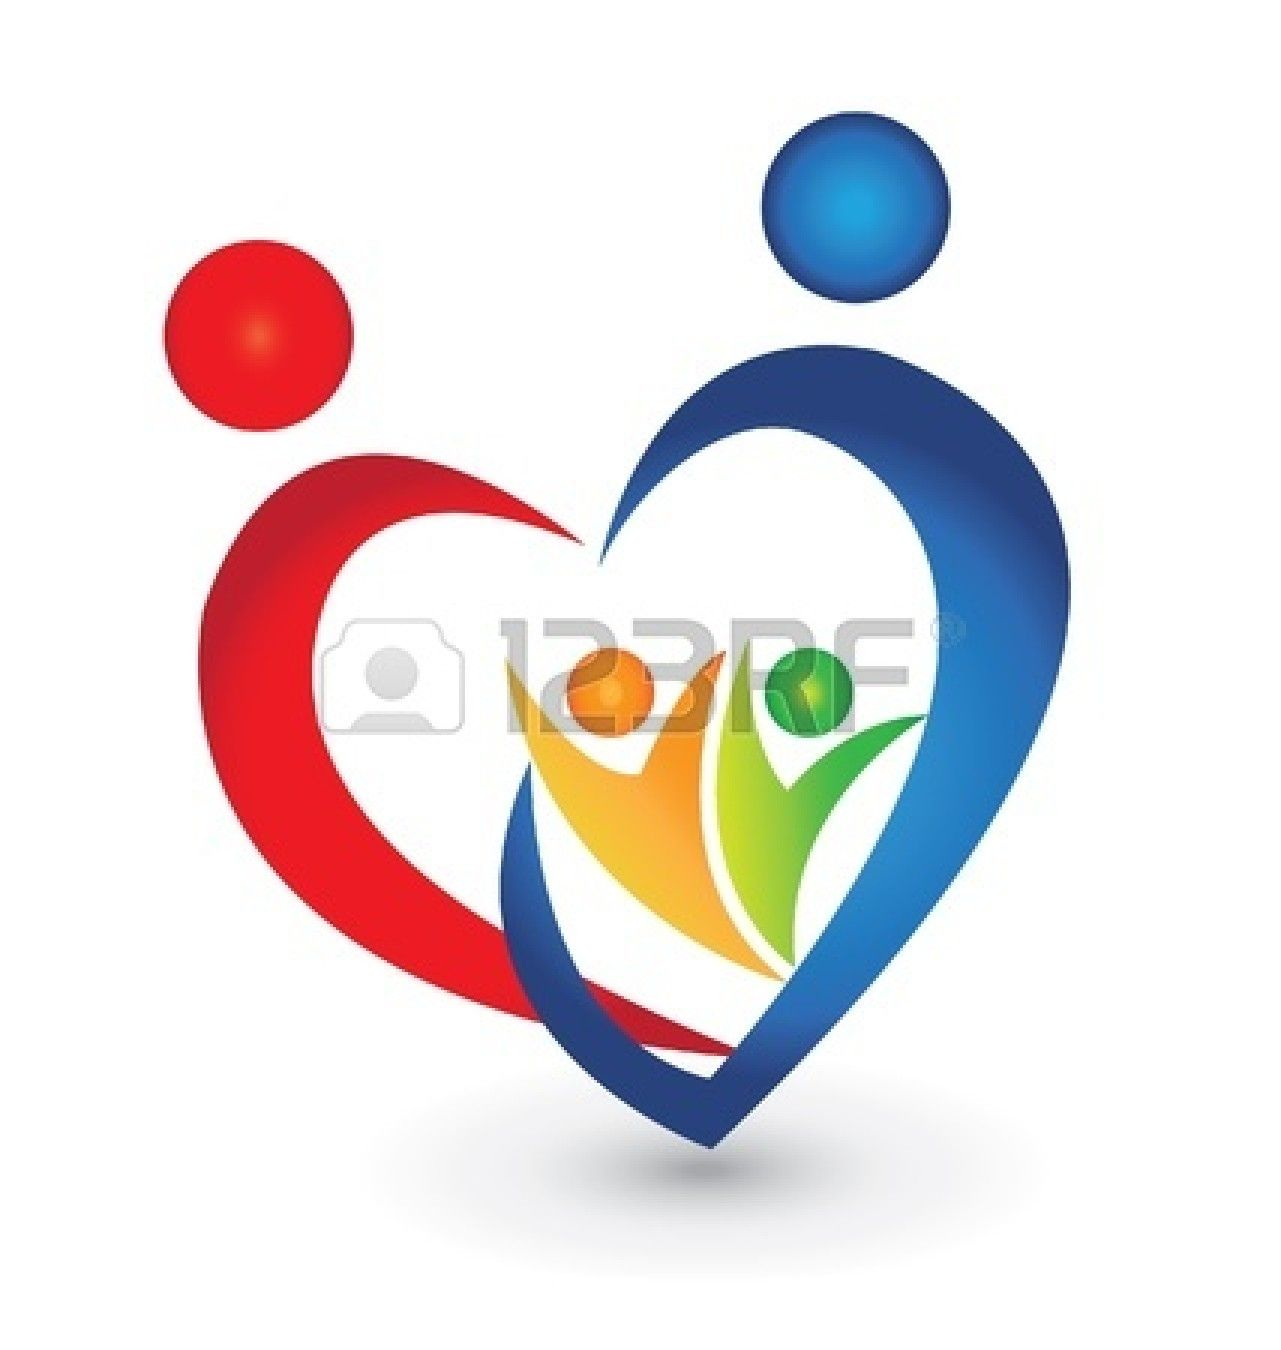 Heart stock illustration royalty free illustrations stock clip art - Family Union In A Heart Shape Logo Royalty Free Stock Images Image 26757519